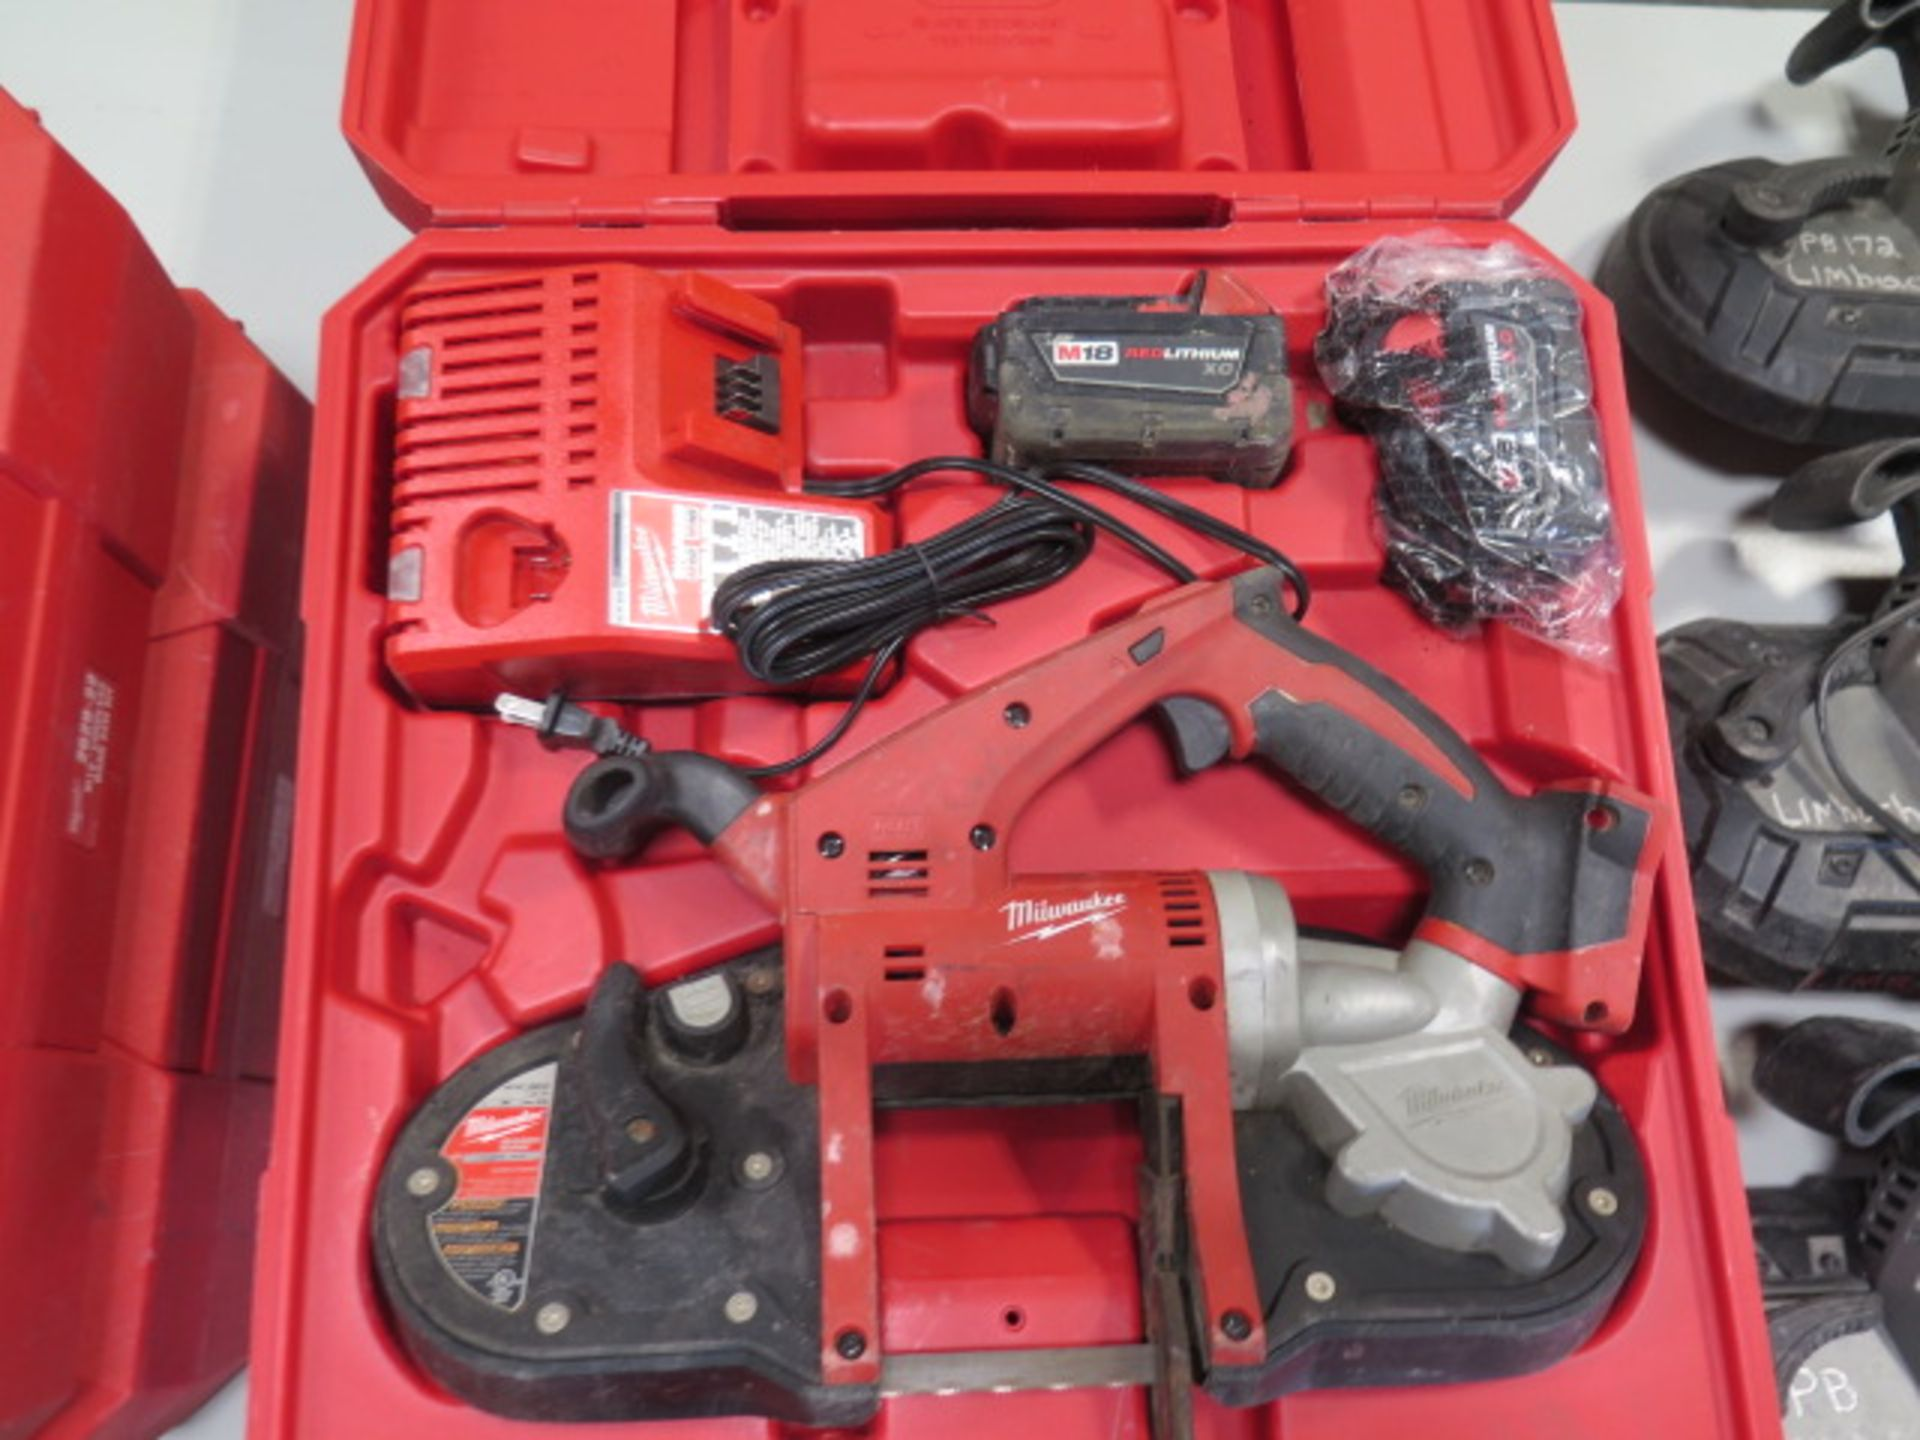 Milwaukee 18 Volt Compact Portable Band Saw Sets (2) (SOLD AS-IS - NO WARRANTY) - Image 3 of 10